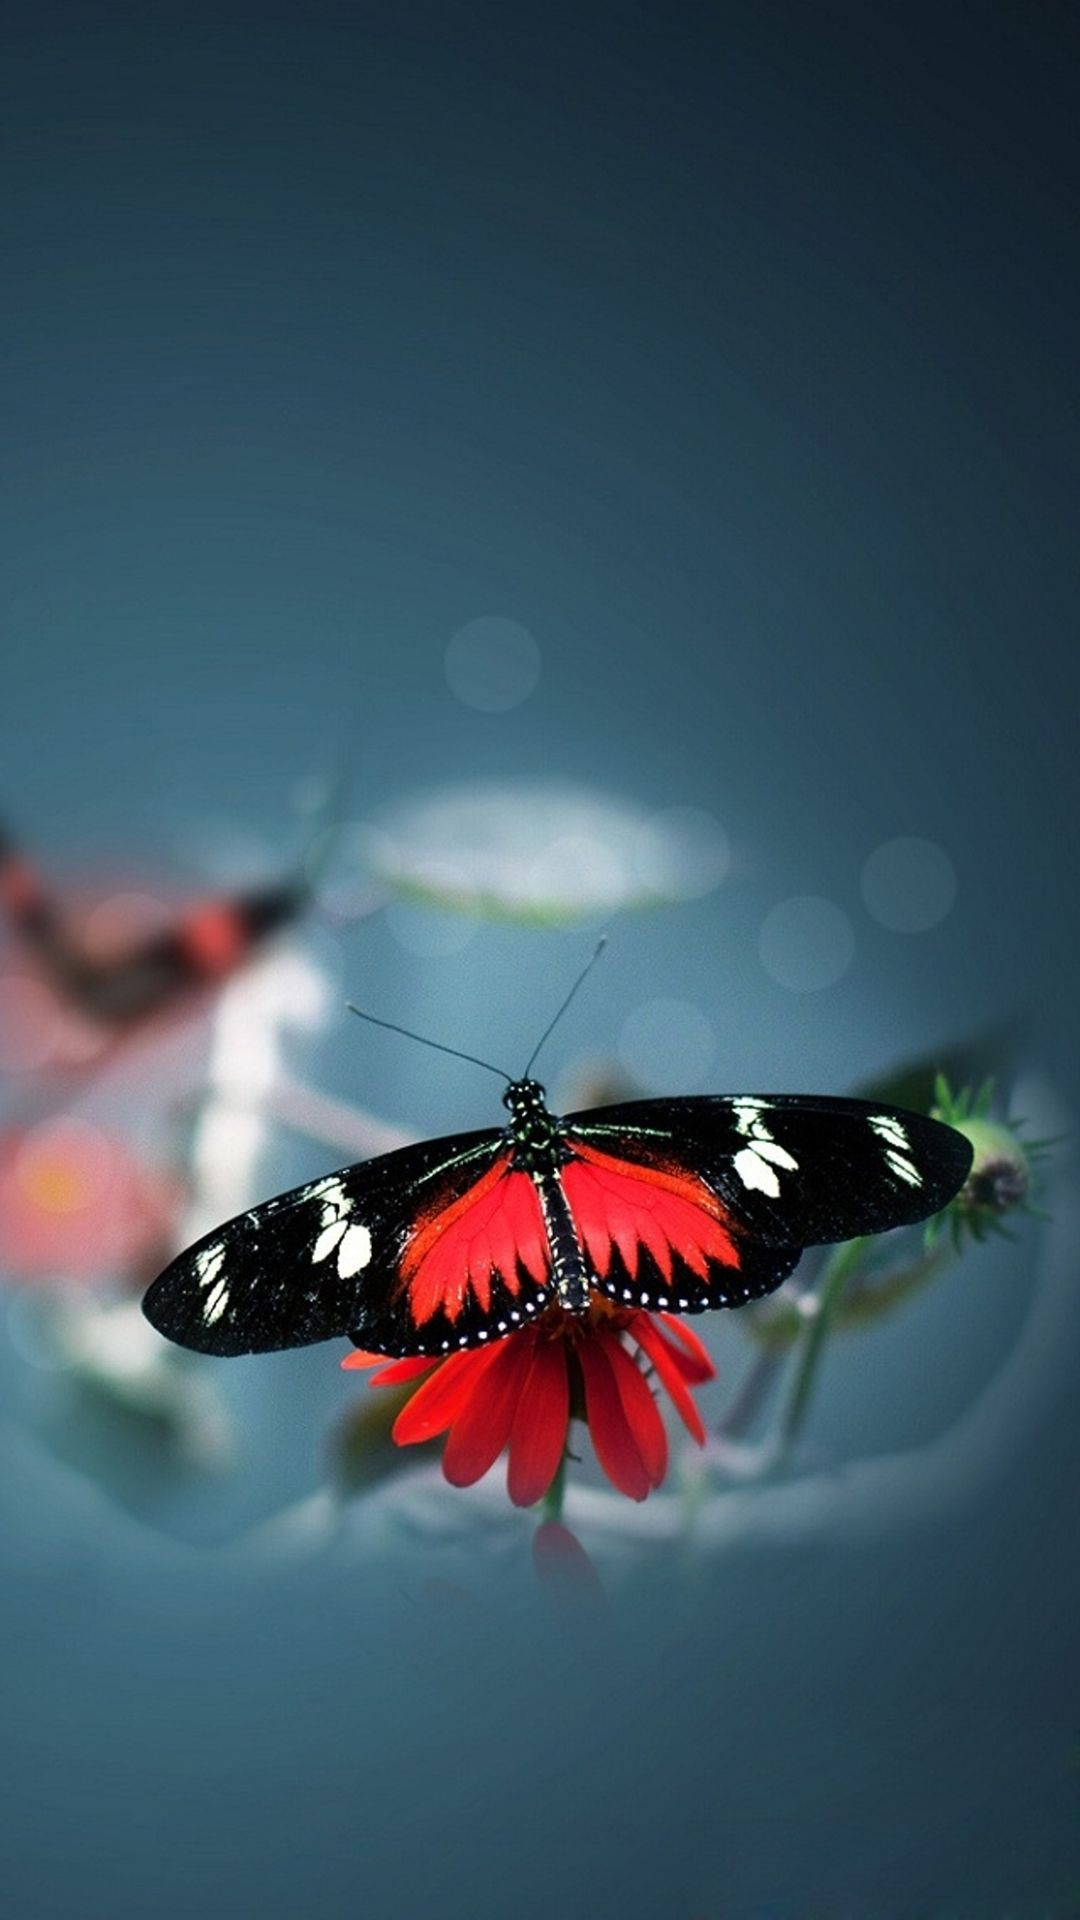 Butterfly Iphone Wallpapers Top Free Butterfly Iphone Backgrounds Wallpaperaccess